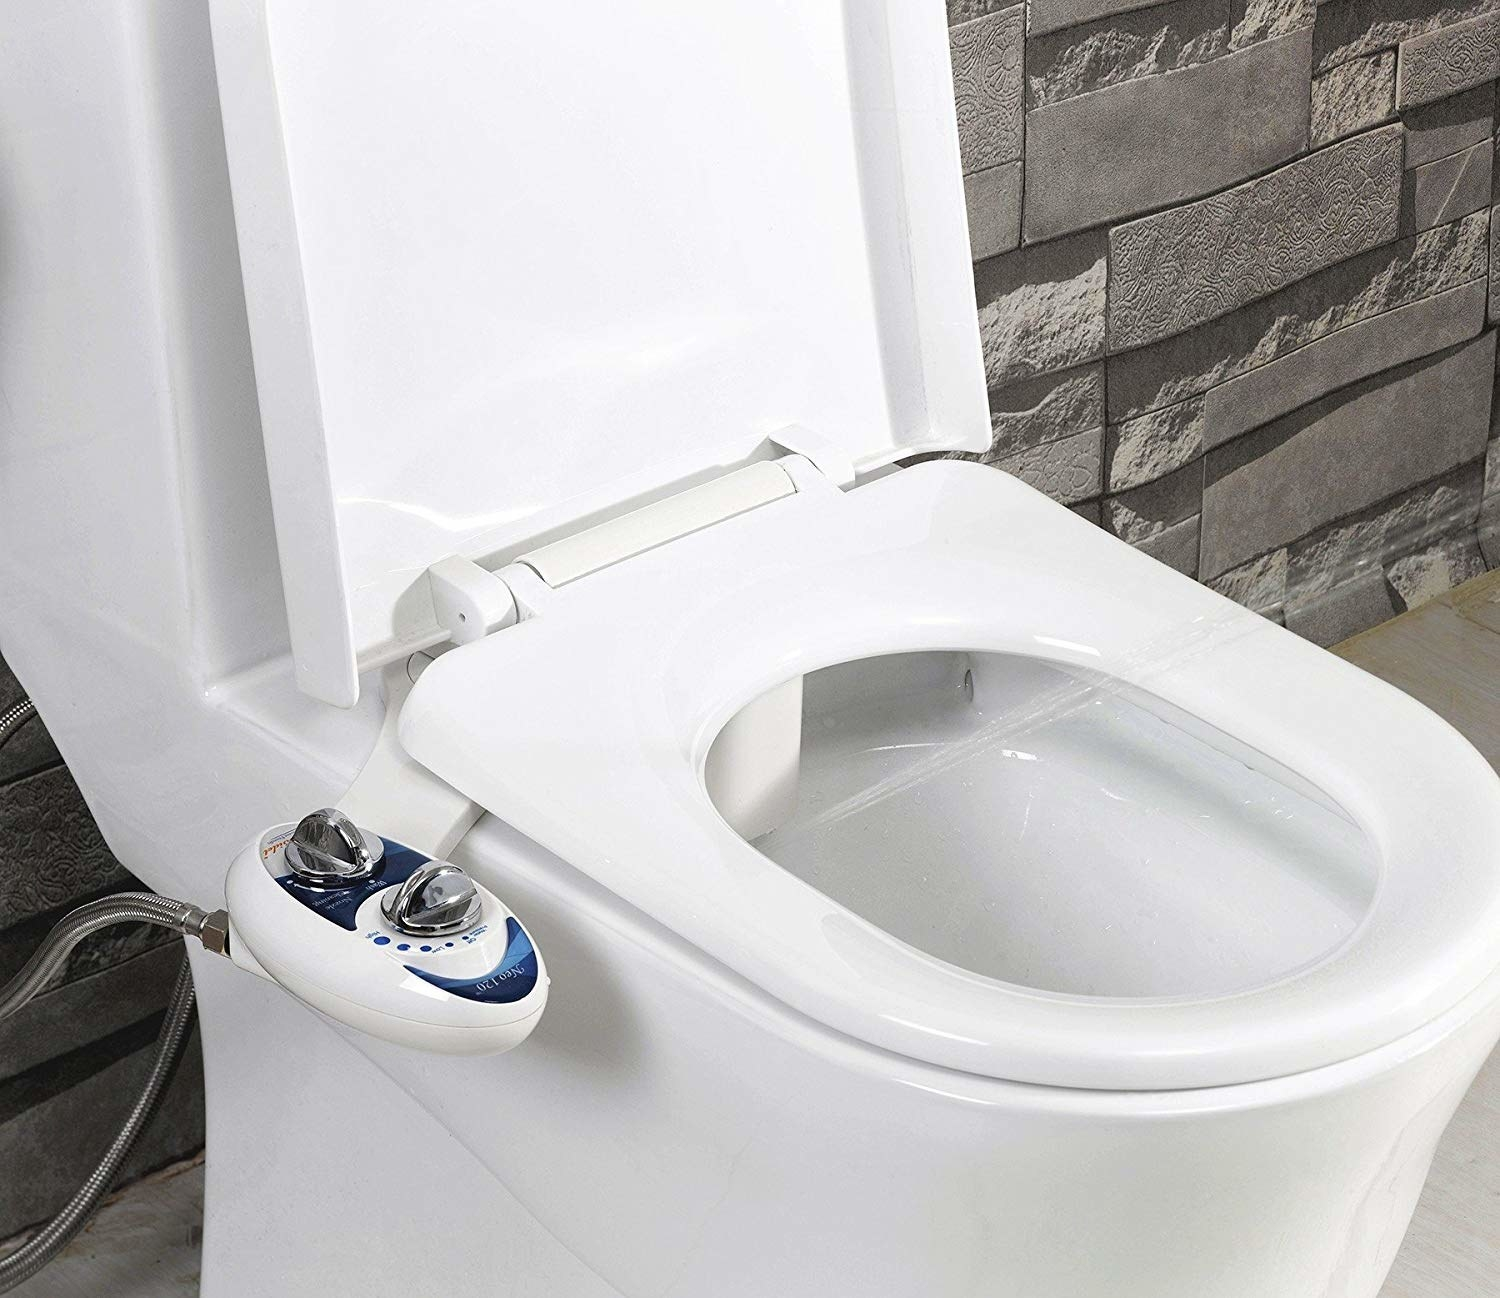 The bidet attachment on a toilet